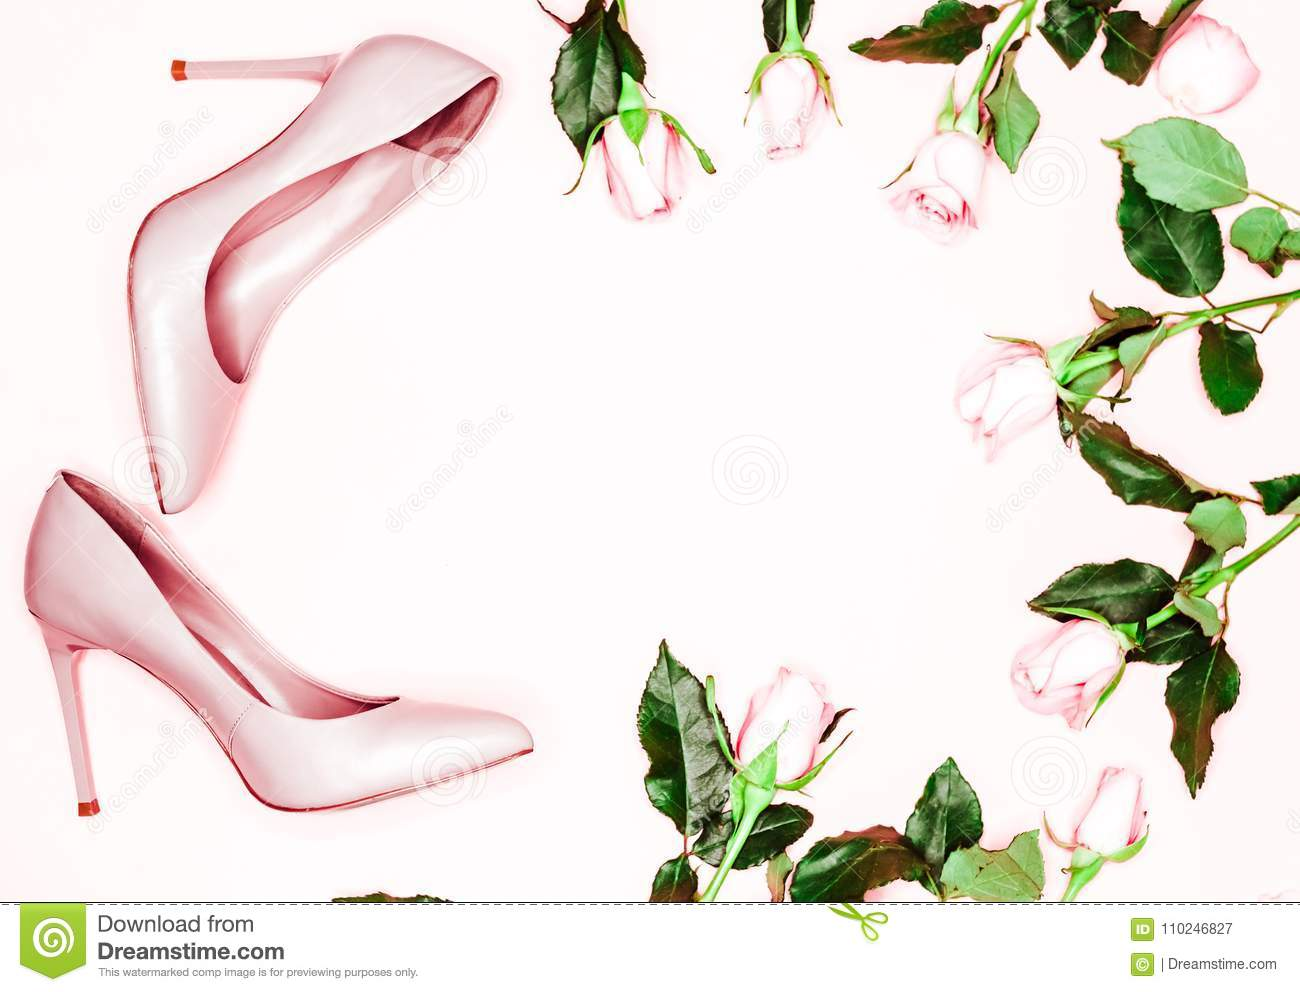 99828b63ed7 Pastel pink women high heel shoes on pink background. Flat lay, top view  trendy